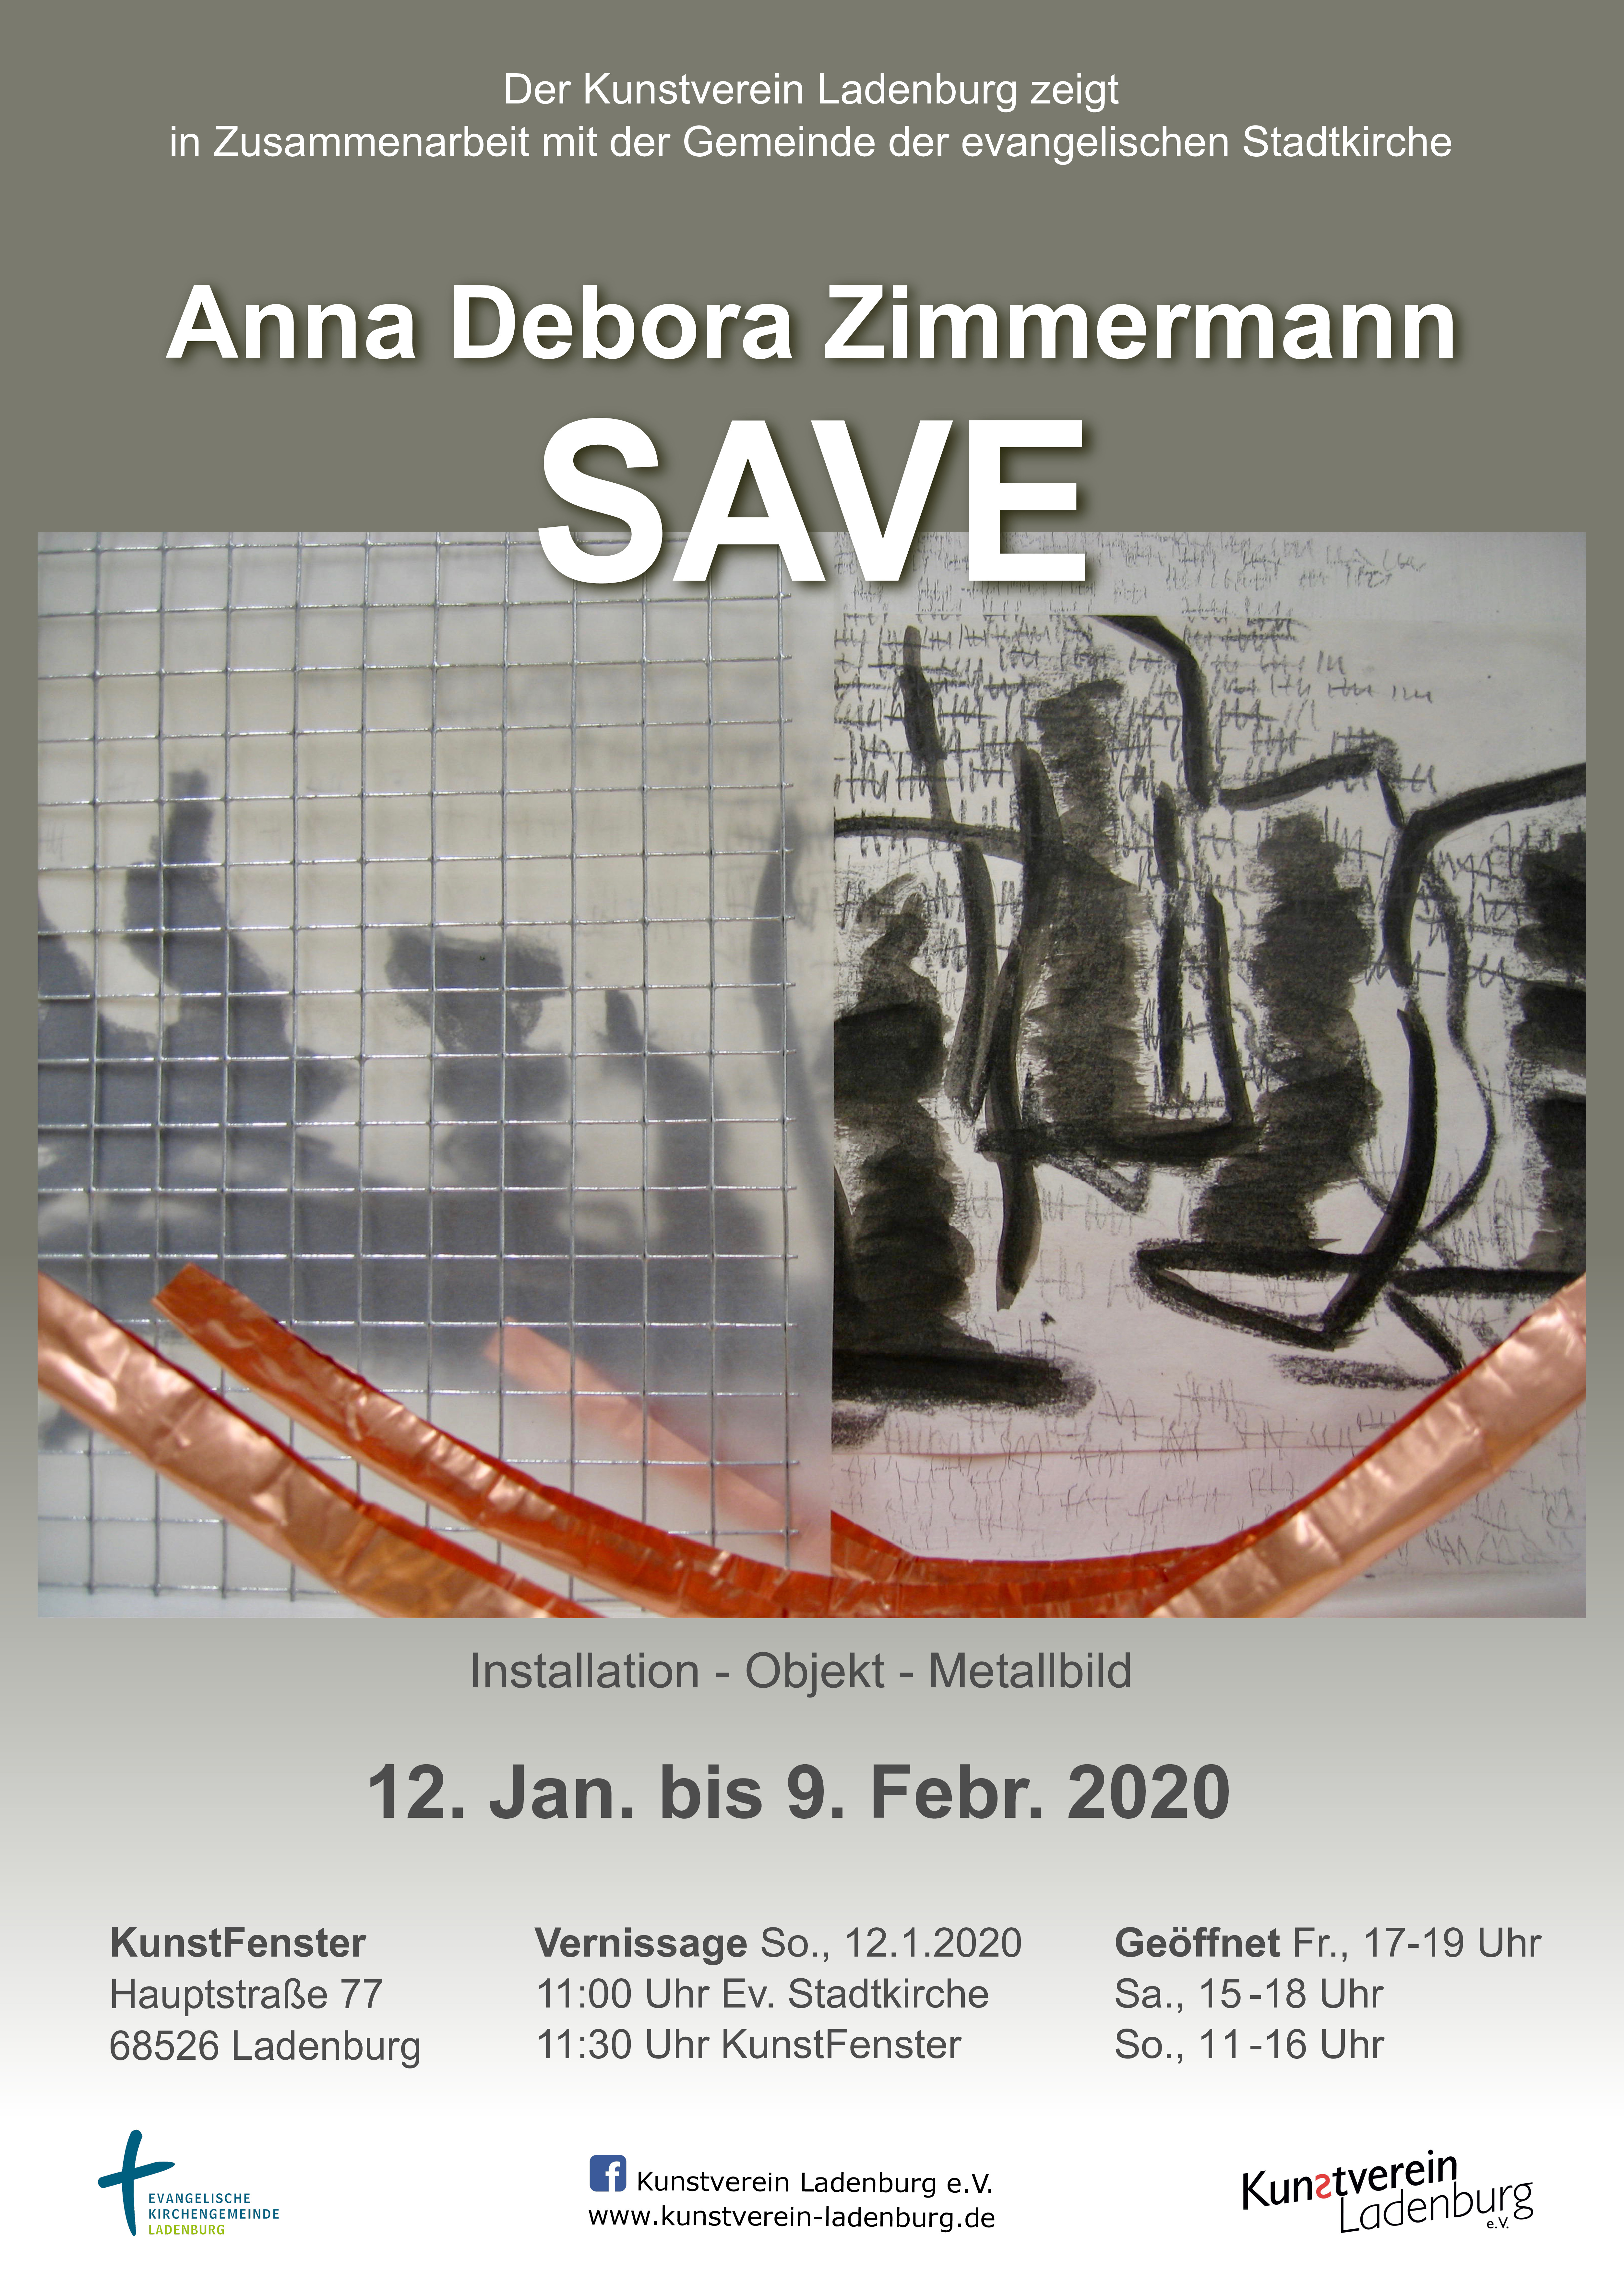 /images/kvl/Ausstellungen/20200112_AnnaDeboraZimmermann/original/00_Plakat-SAVE.jpg